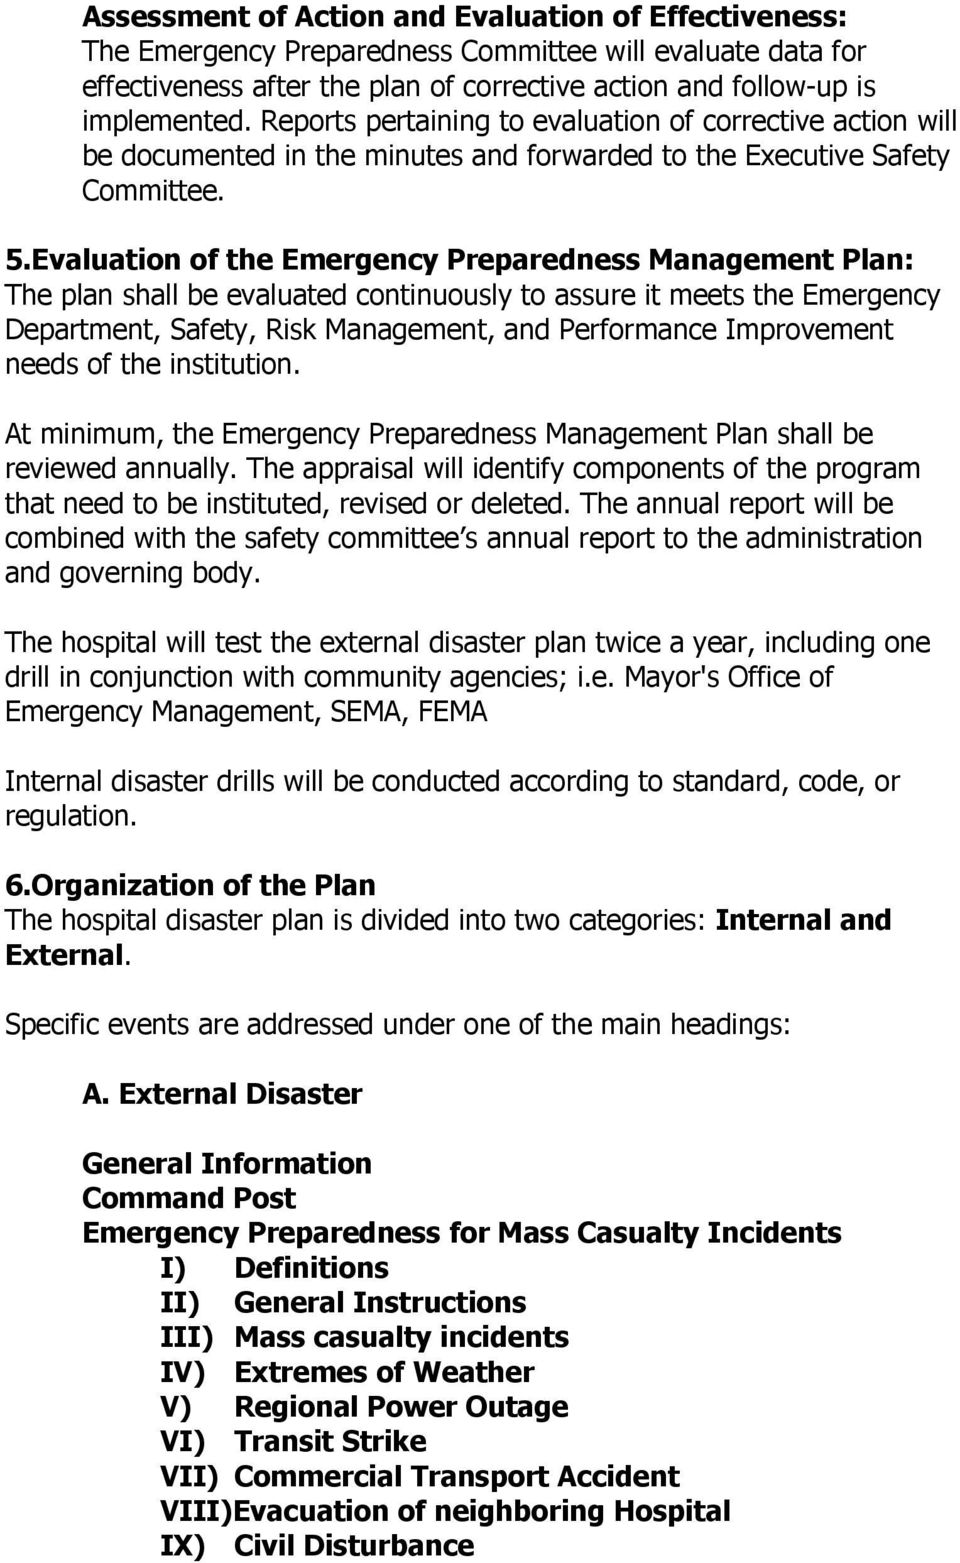 Evaluation of the Emergency Preparedness Management Plan: The plan shall be evaluated continuously to assure it meets the Emergency Department, Safety, Risk Management, and Performance Improvement